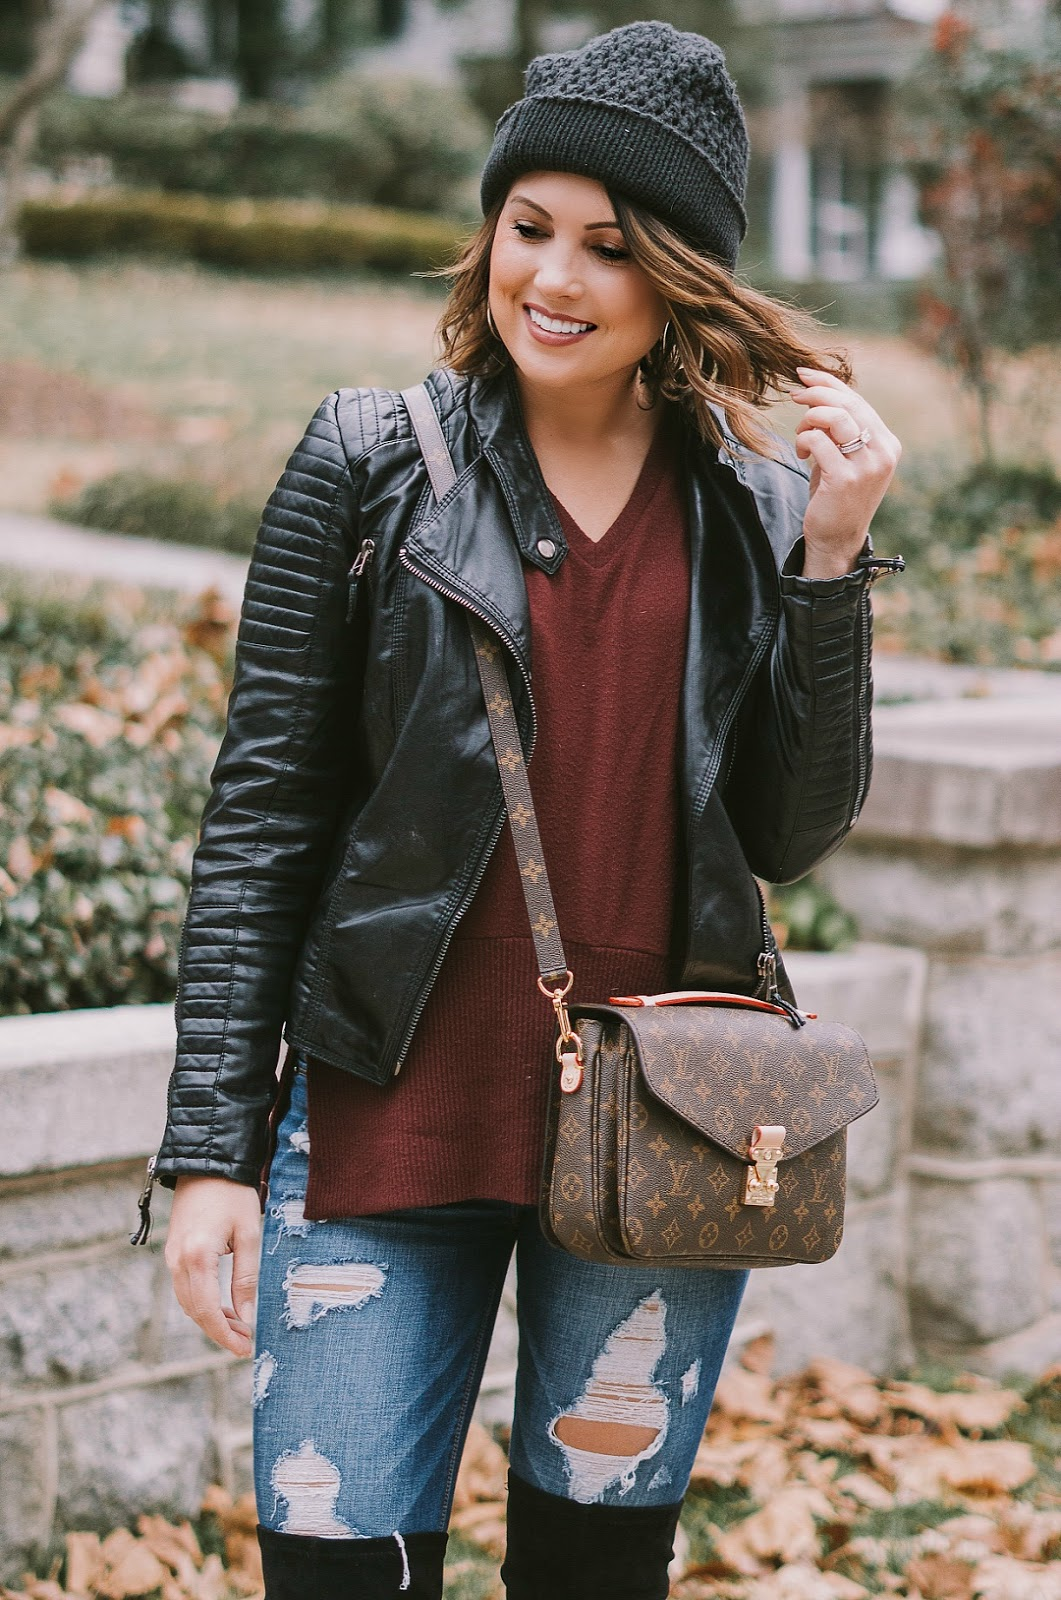 leather moto, beanie, winter fashion, nc photographer, greensboro photographer, life and messy hair, xo samantha brooke, sam brooke photo, samantha brooke photography, louis vuittin pochette metis, louis vuitton crossbody